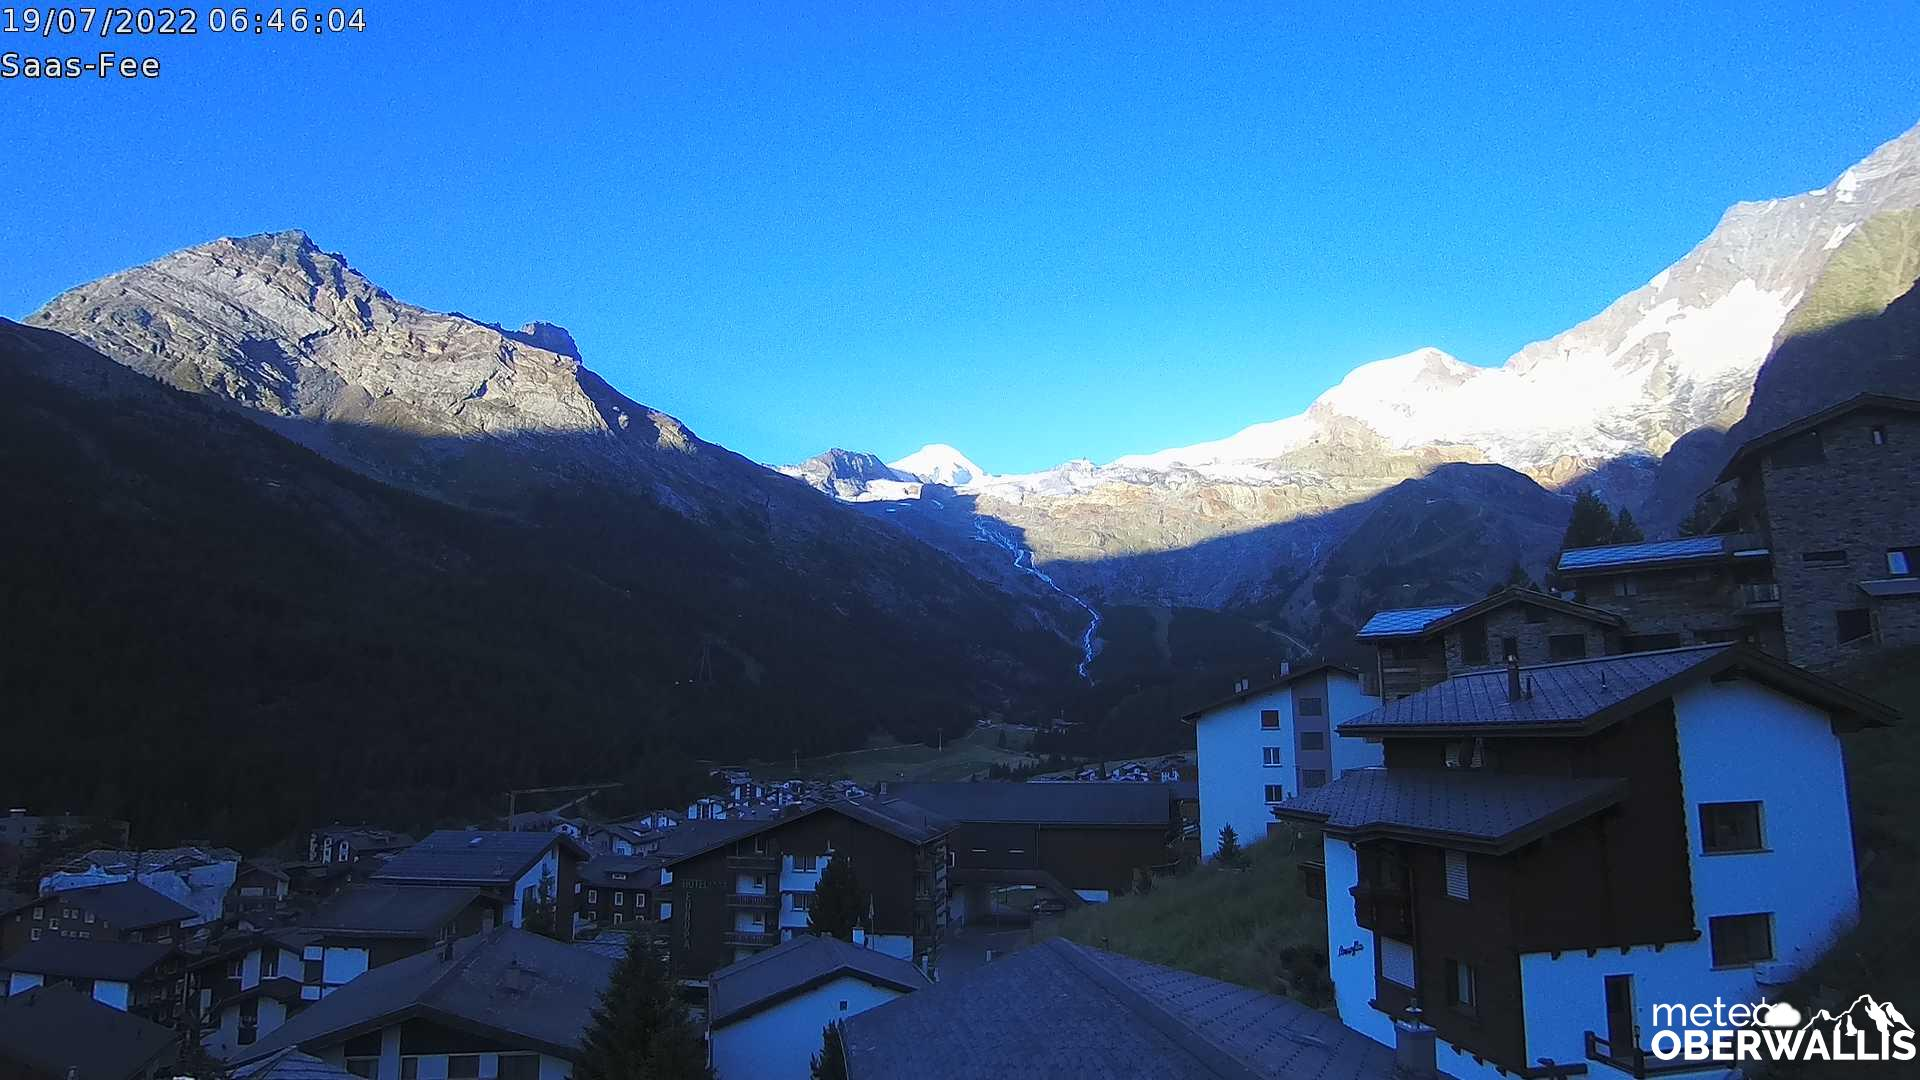 Webcam <br><span> saas fee panoranica</span>